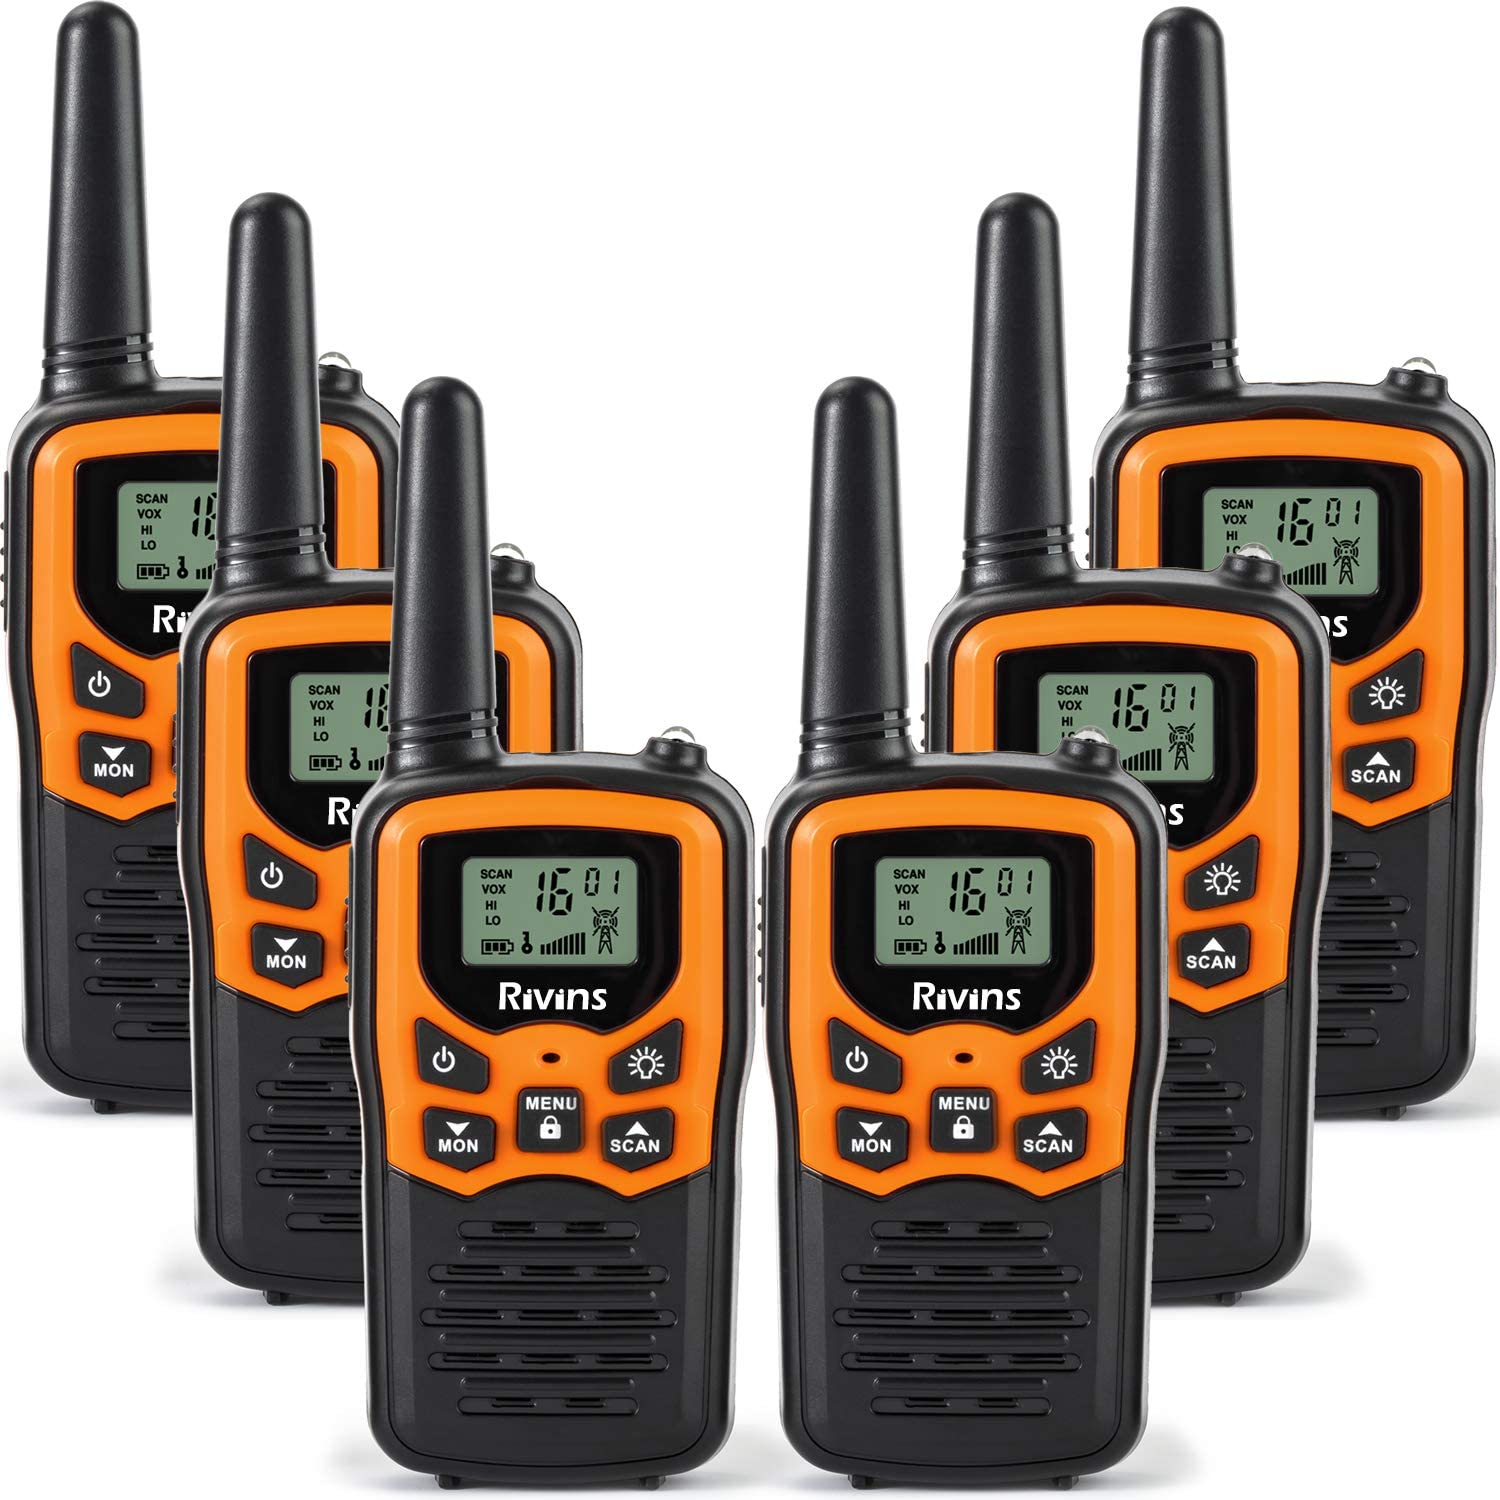 Rivins RV-7 Walkie Talkies for Adults Long Range 6 Pack 2-Way Radios Up to 5 Miles Range in Open Field 22 Channel FRS/GMRS Walkie Talkies UHF Handheld Walky Talky (Black/Orange)